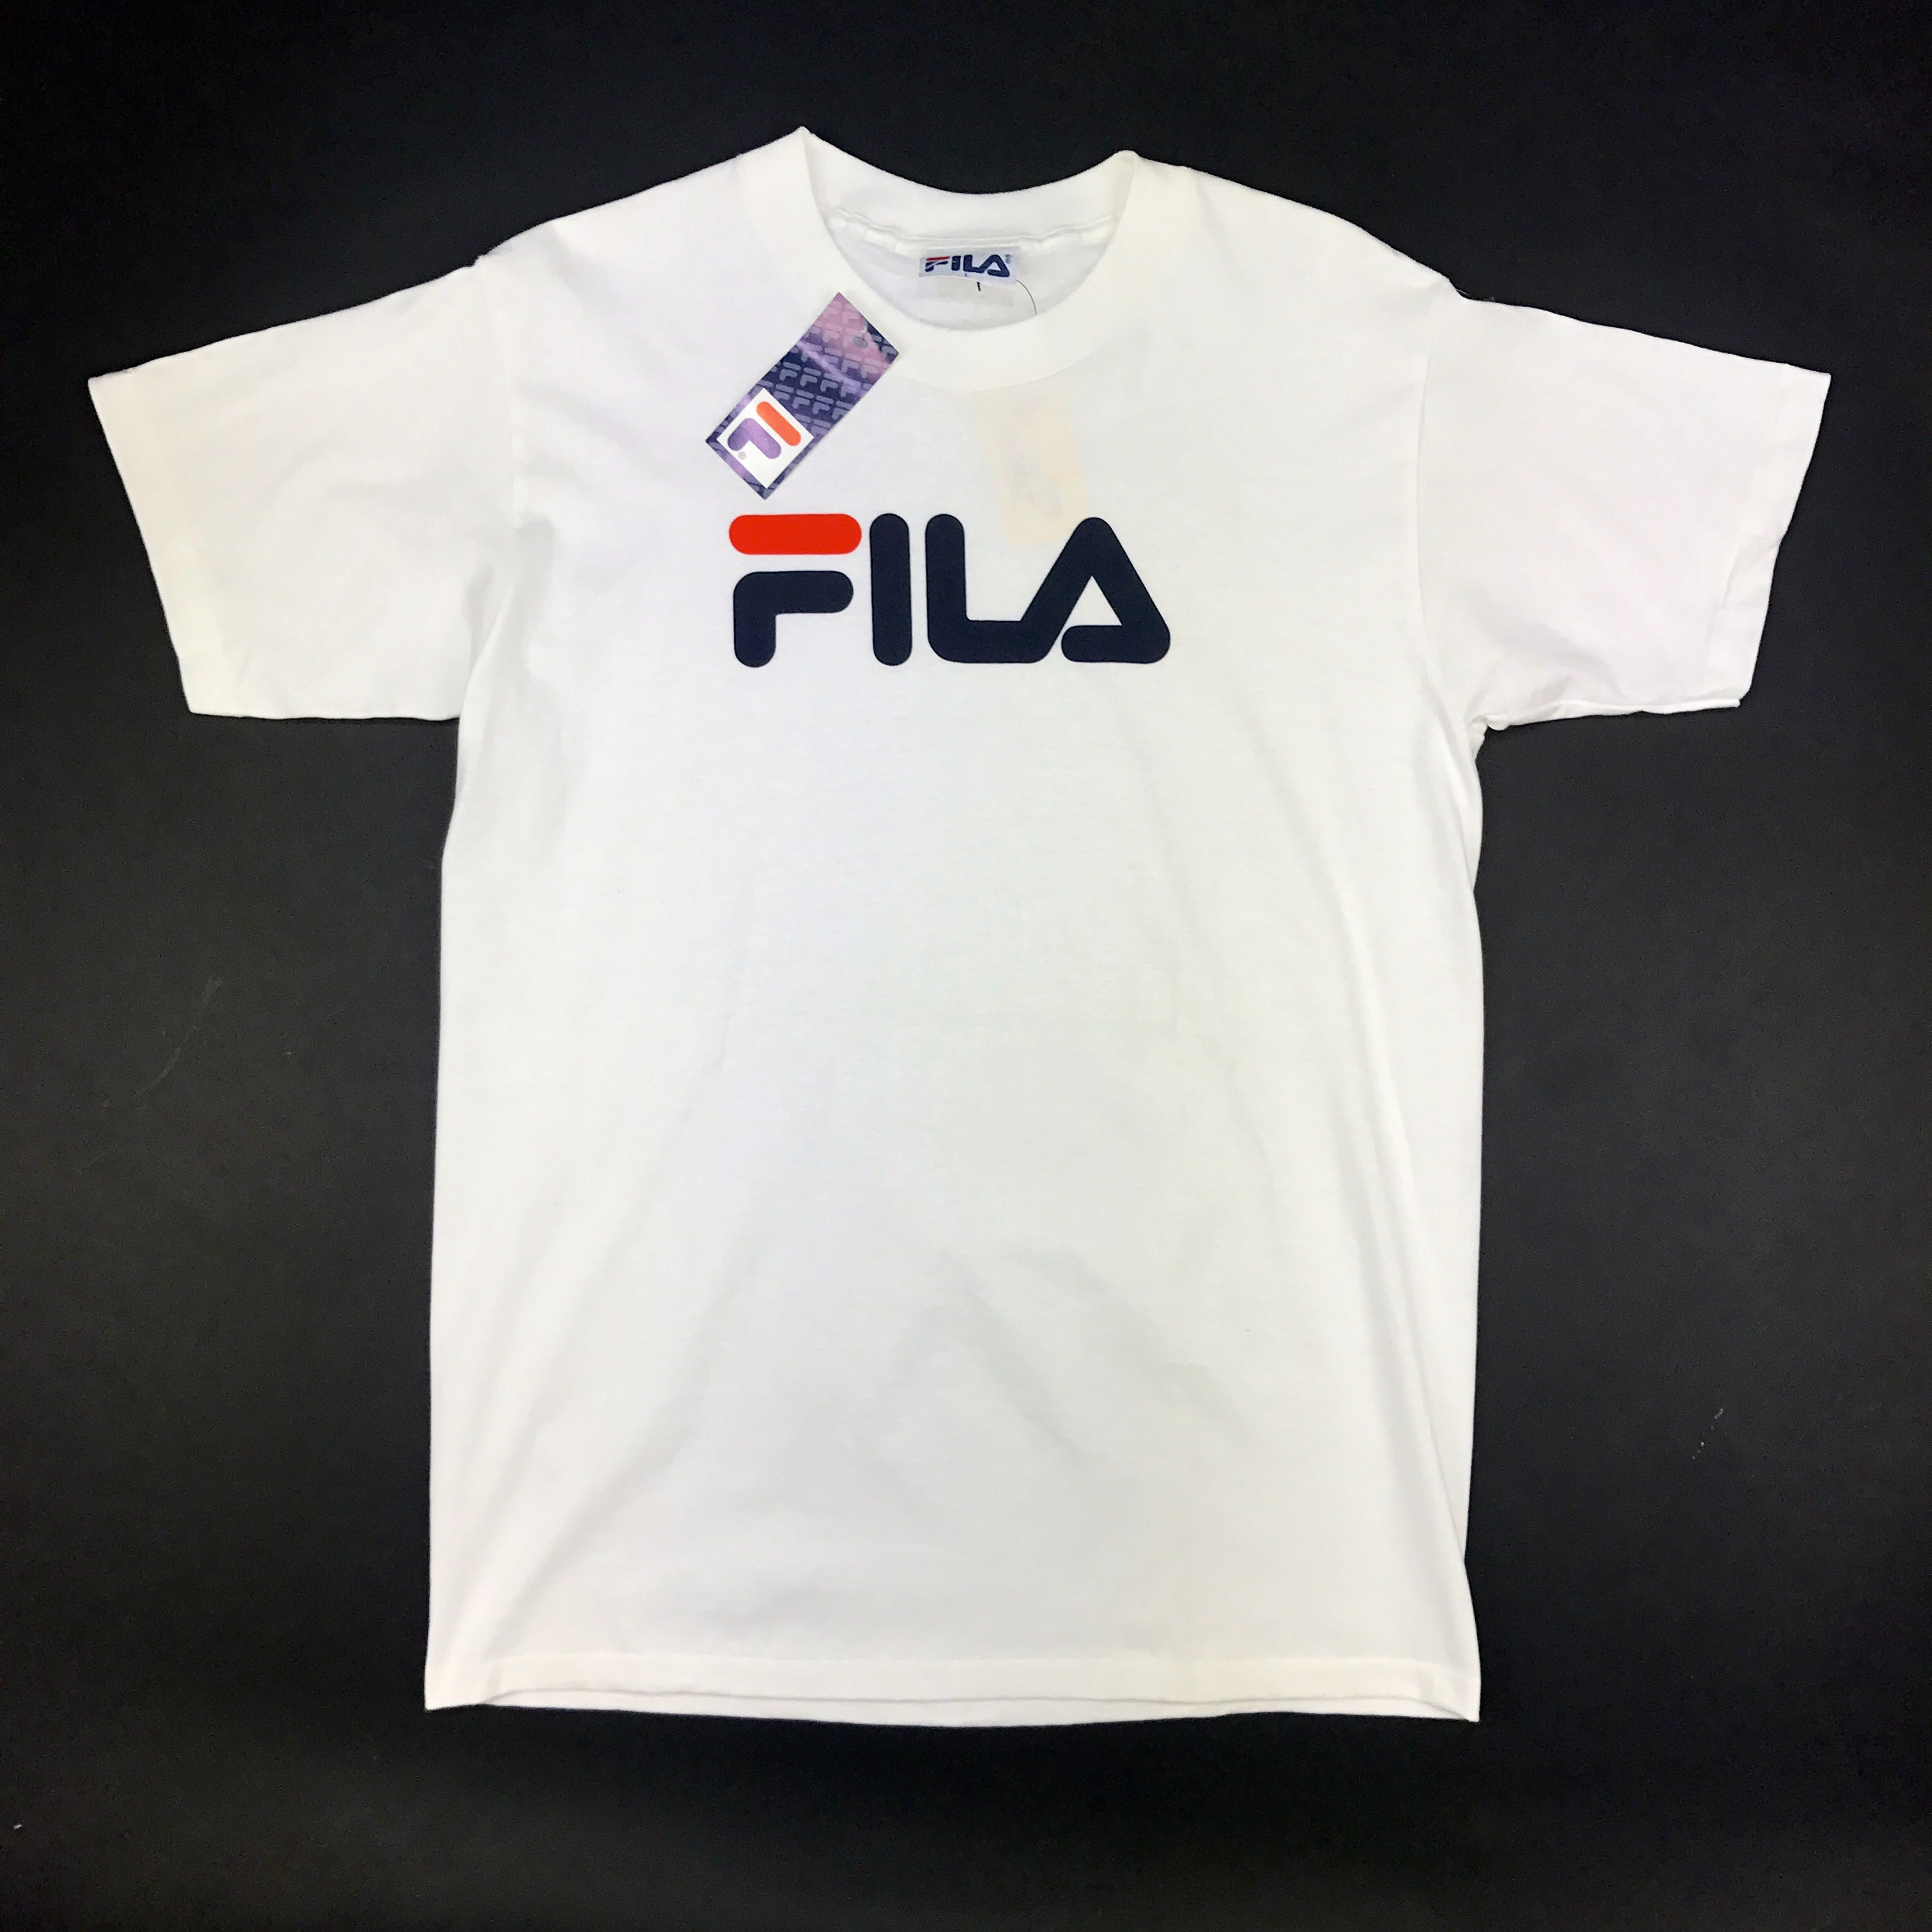 Fila T-shirts vintage fila t shirt - classic collection ZLBCRNA